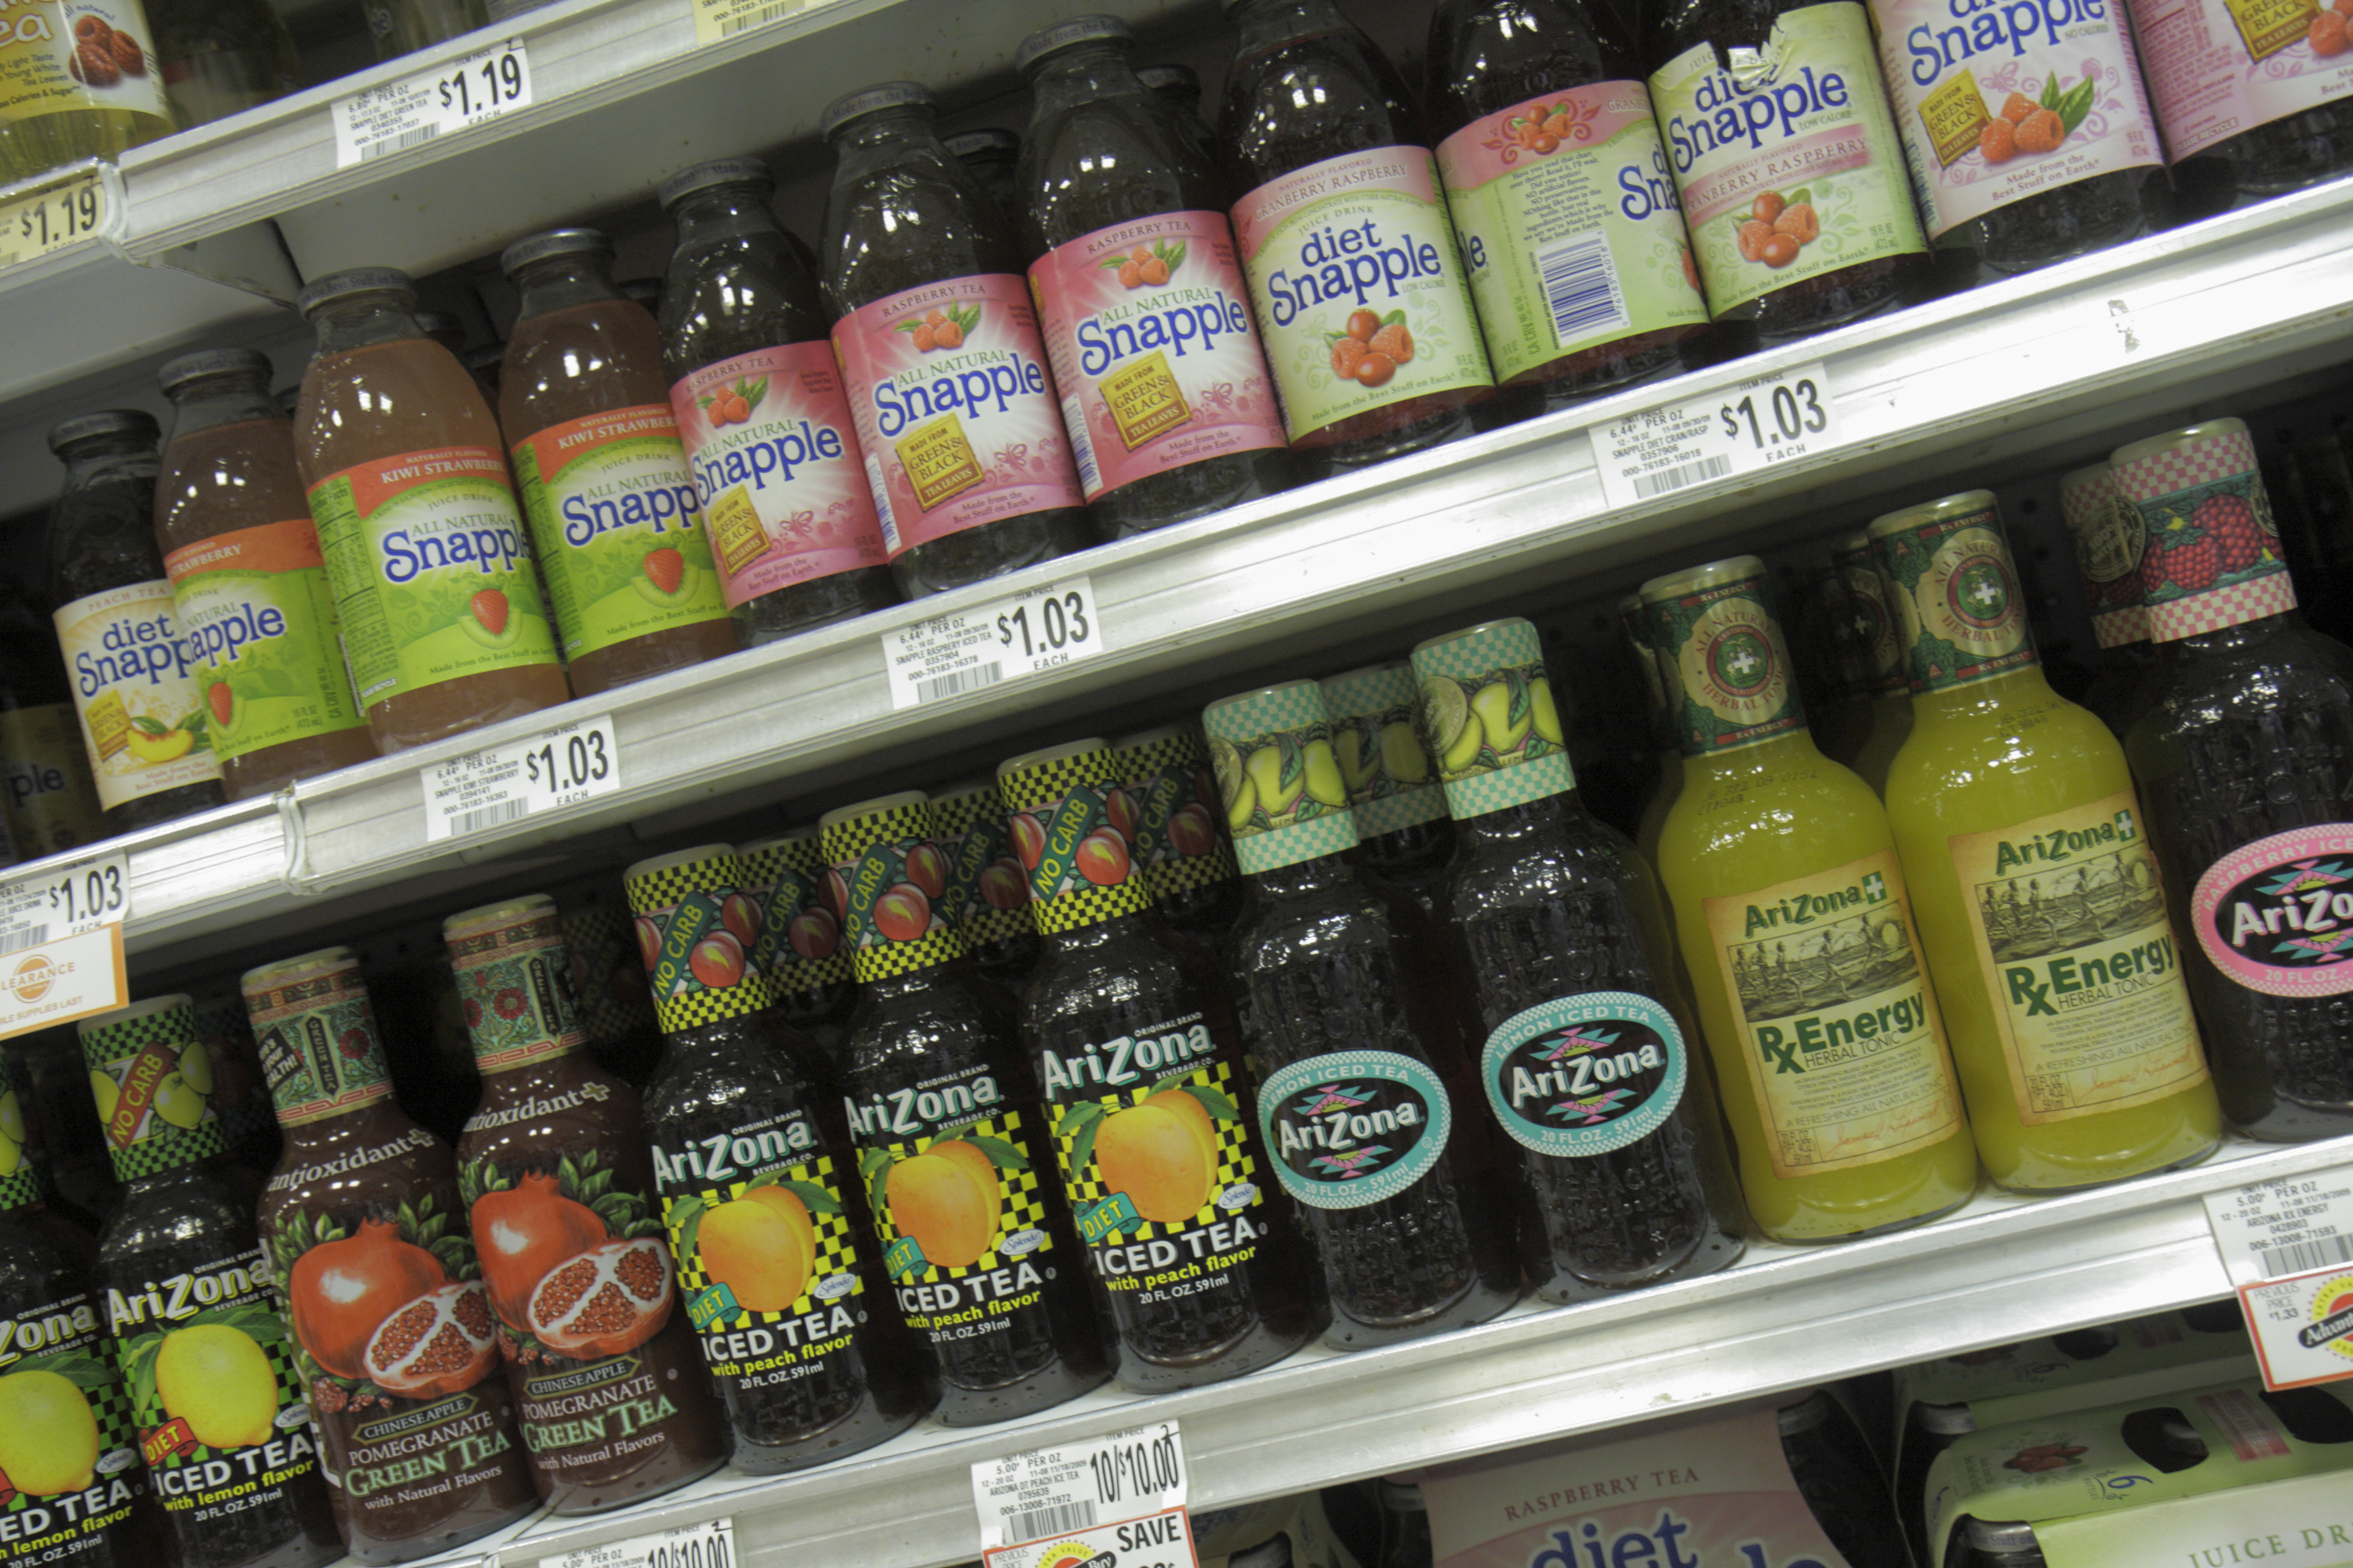 Bottles of drinks for sale in Publix Grocery Store